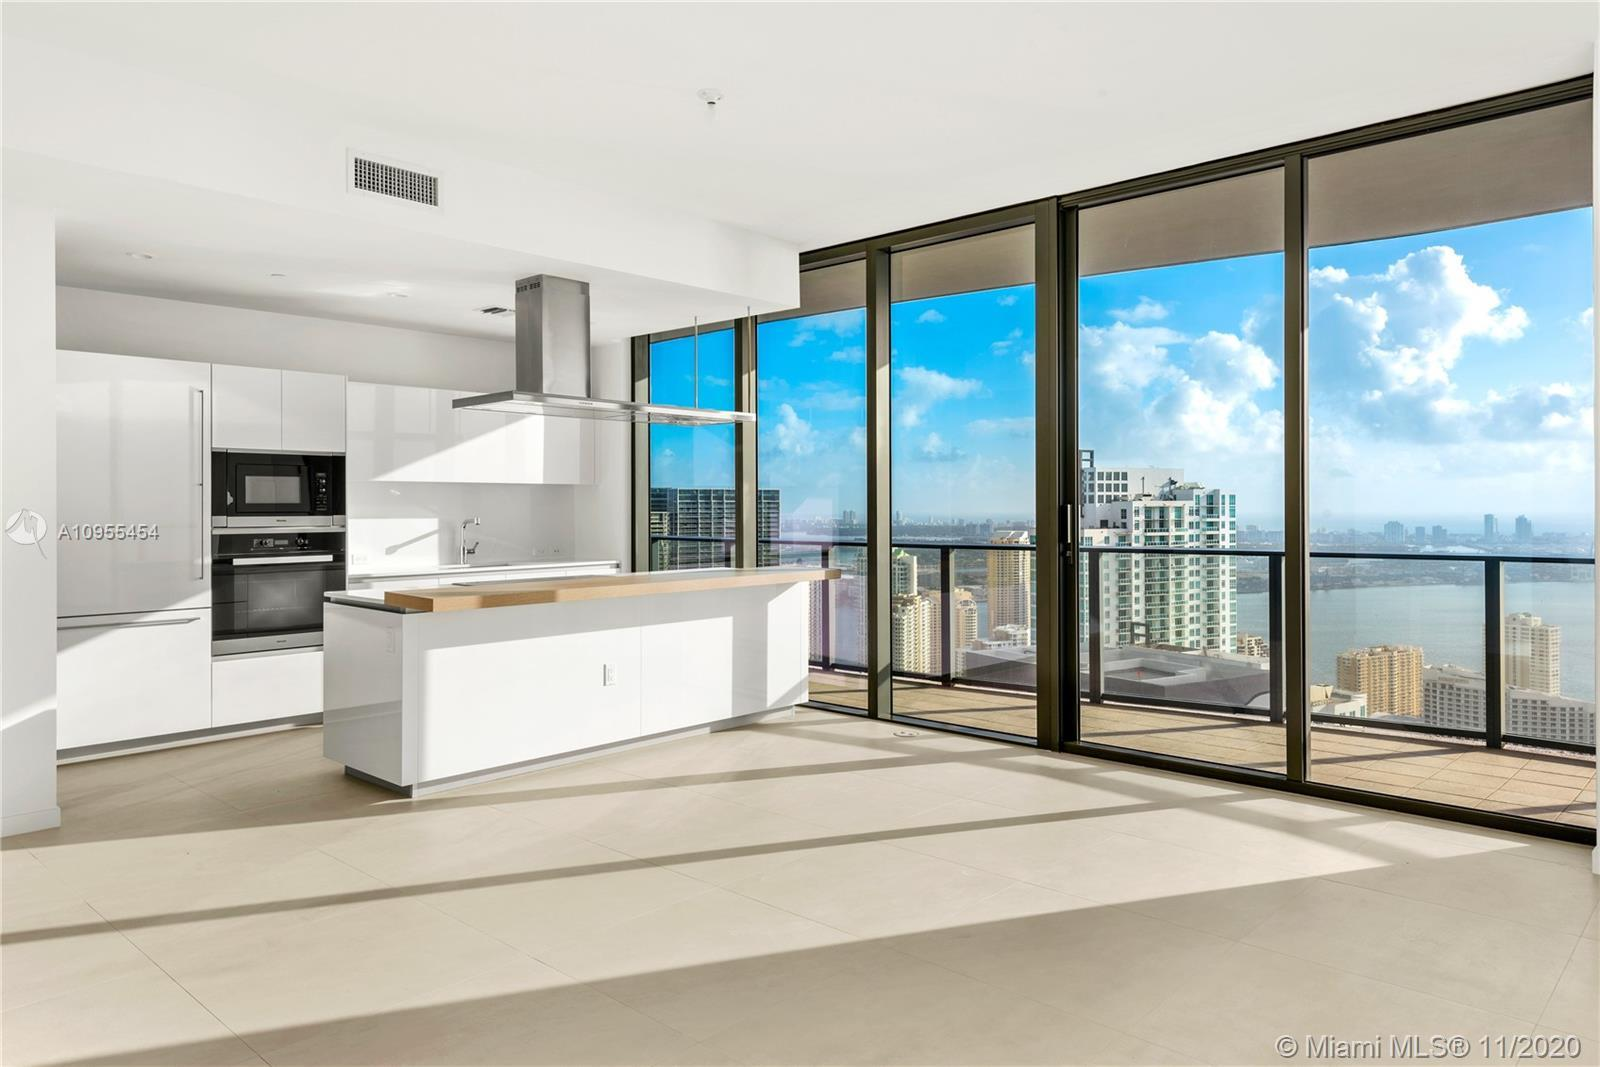 Worldclass views from this 3 Bed + Den/3.5 Bath Lower Penthouse at Brickell Flatiron with higher cei